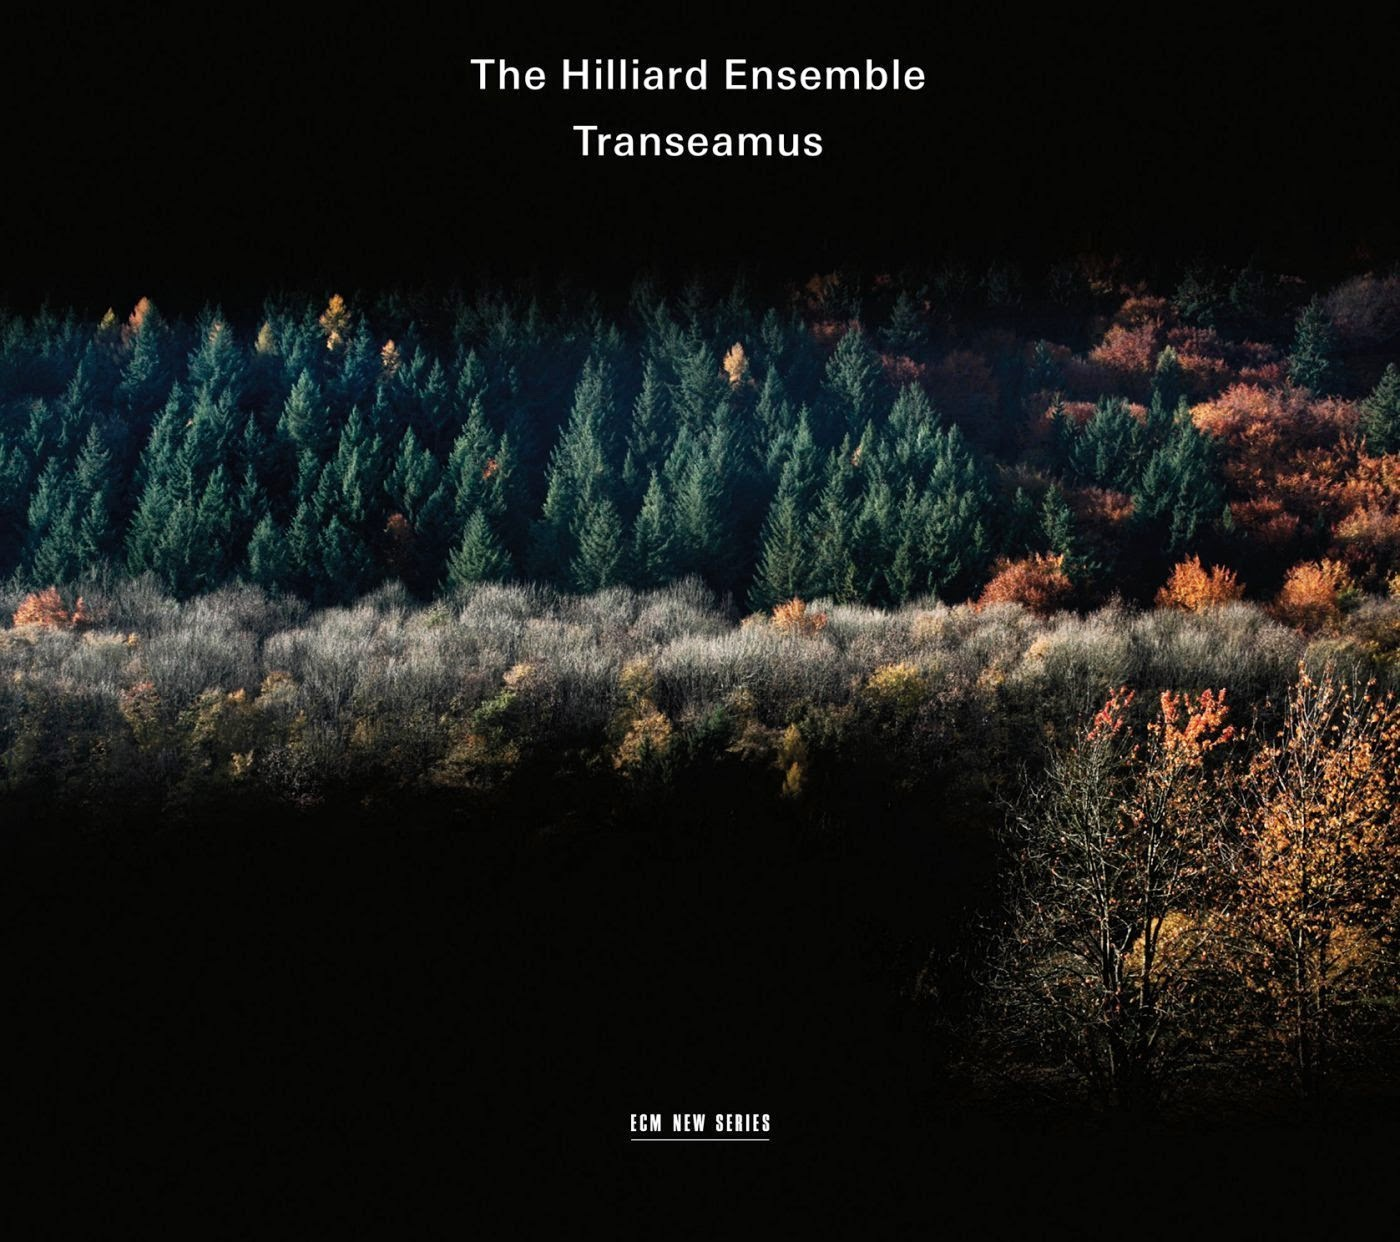 Transeamus - The Hilliard Ensemble